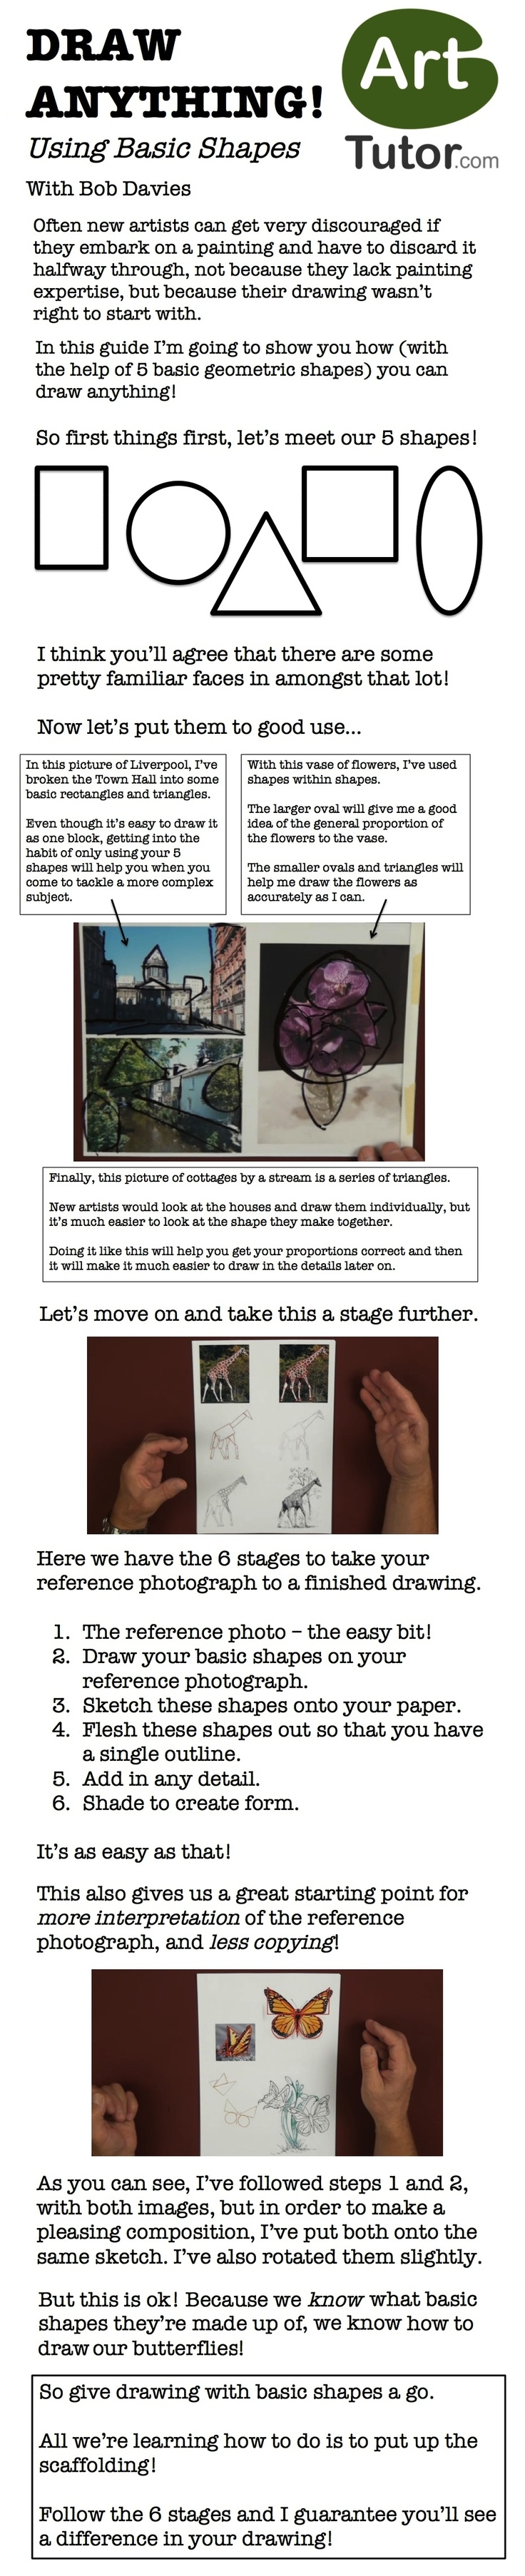 Have you ever struggled to get your drawing just right? Follow Bob Davies' instruction and use 5 shapes to draw absolutely anything!